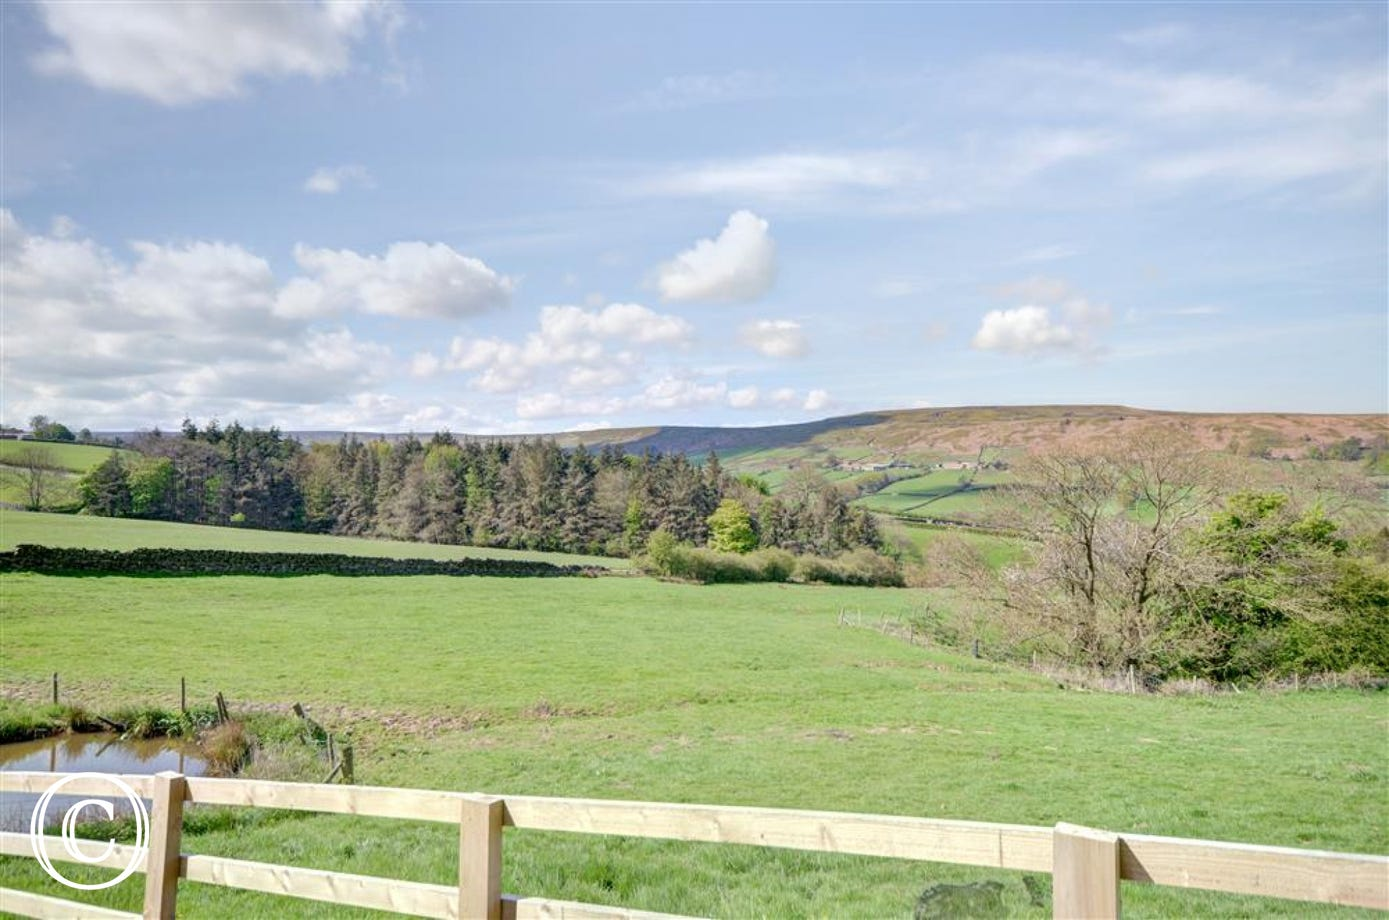 The Danby Valley